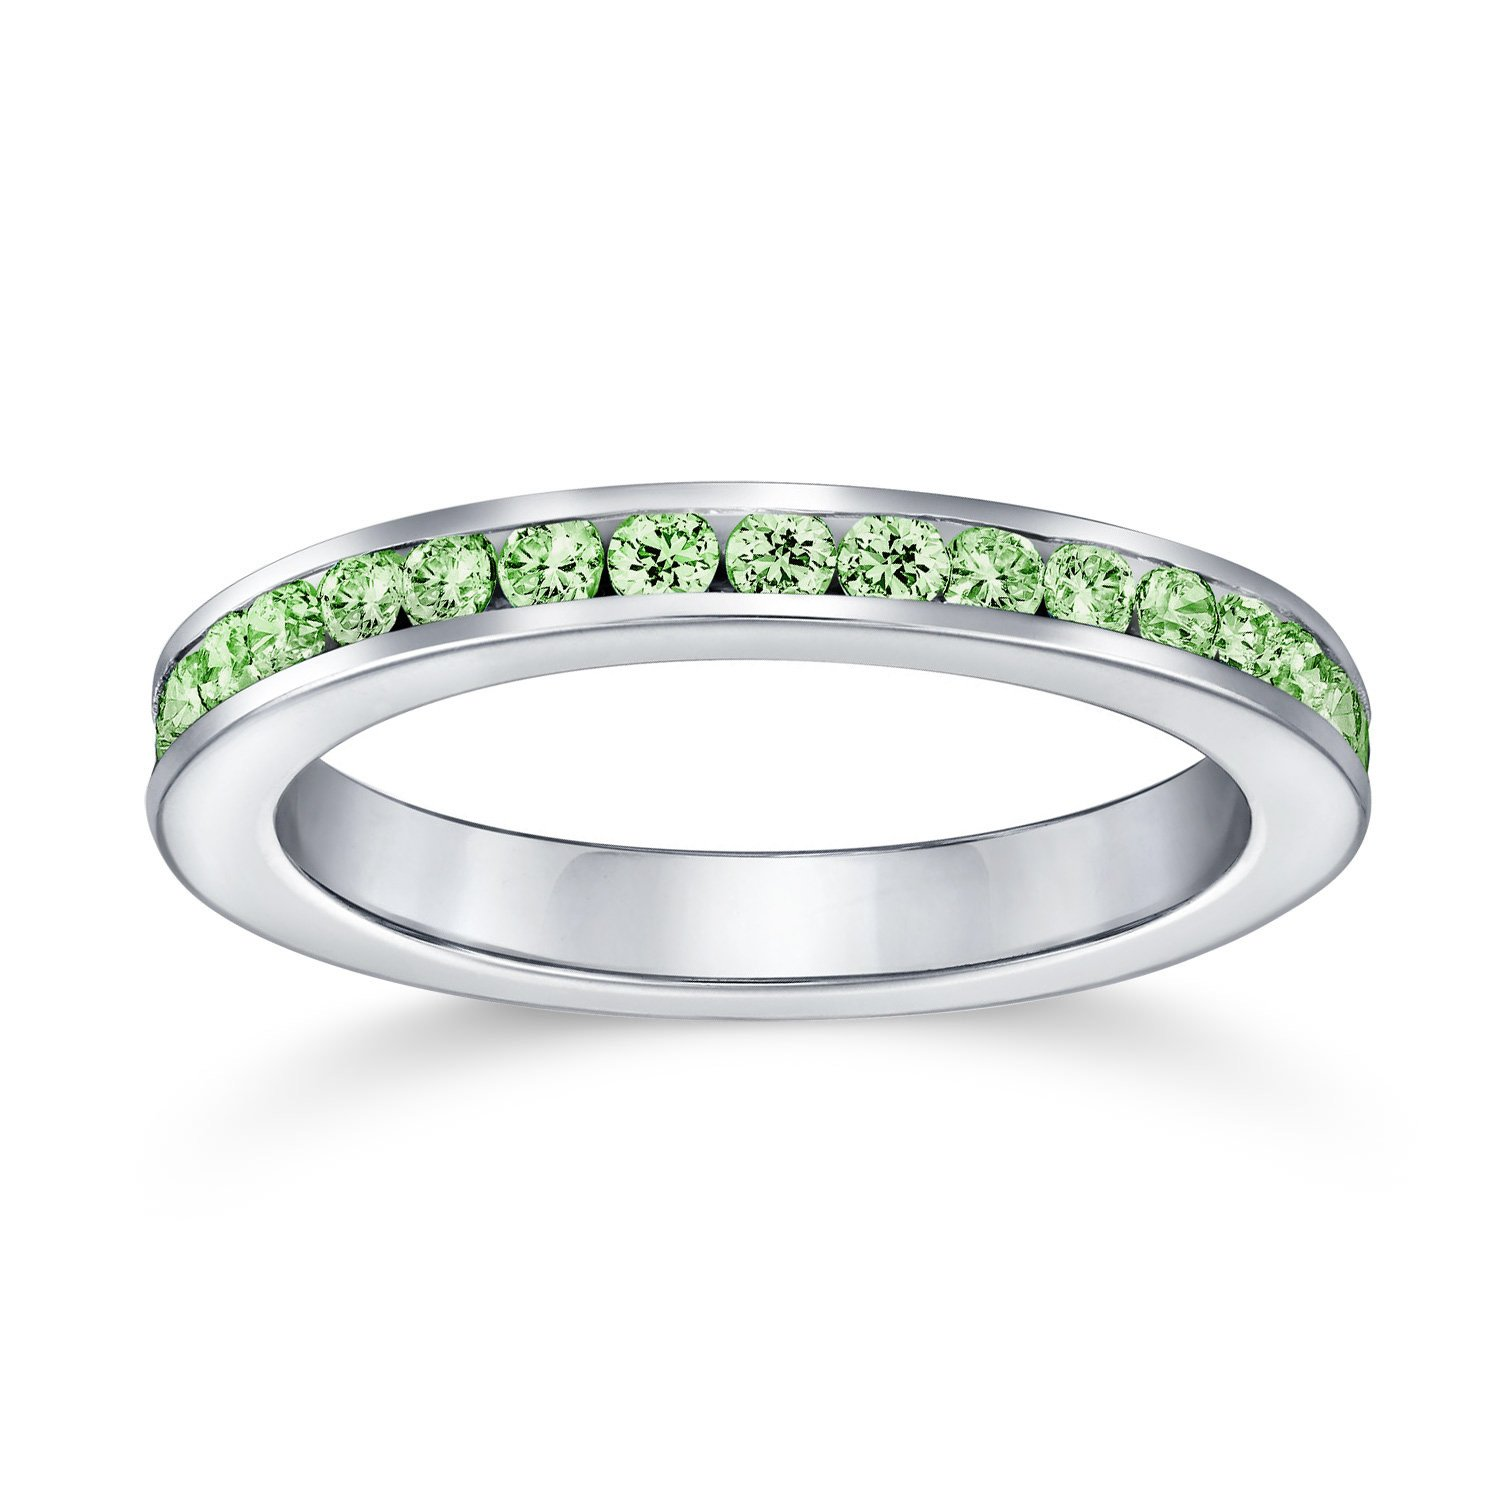 Bling Jewelry Silver Simulated Peridot CZ August Eternity Birthstone Ring N805yp